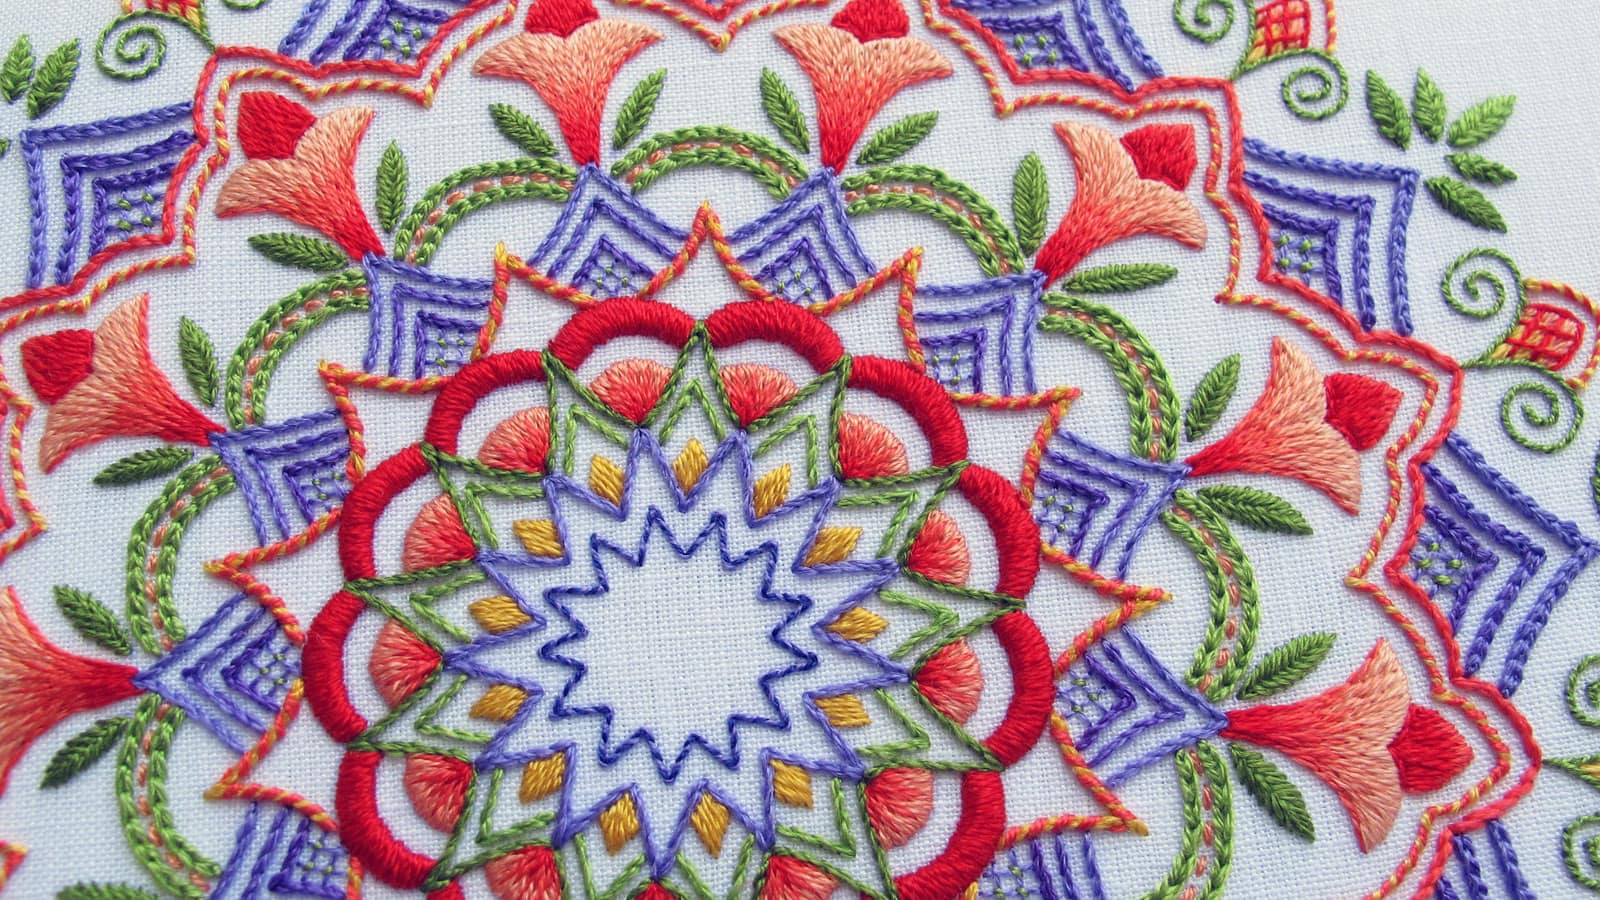 Embroidery Sampler Patterns Free Needlenthread Tips Tricks And Great Resources For Hand Embroidery